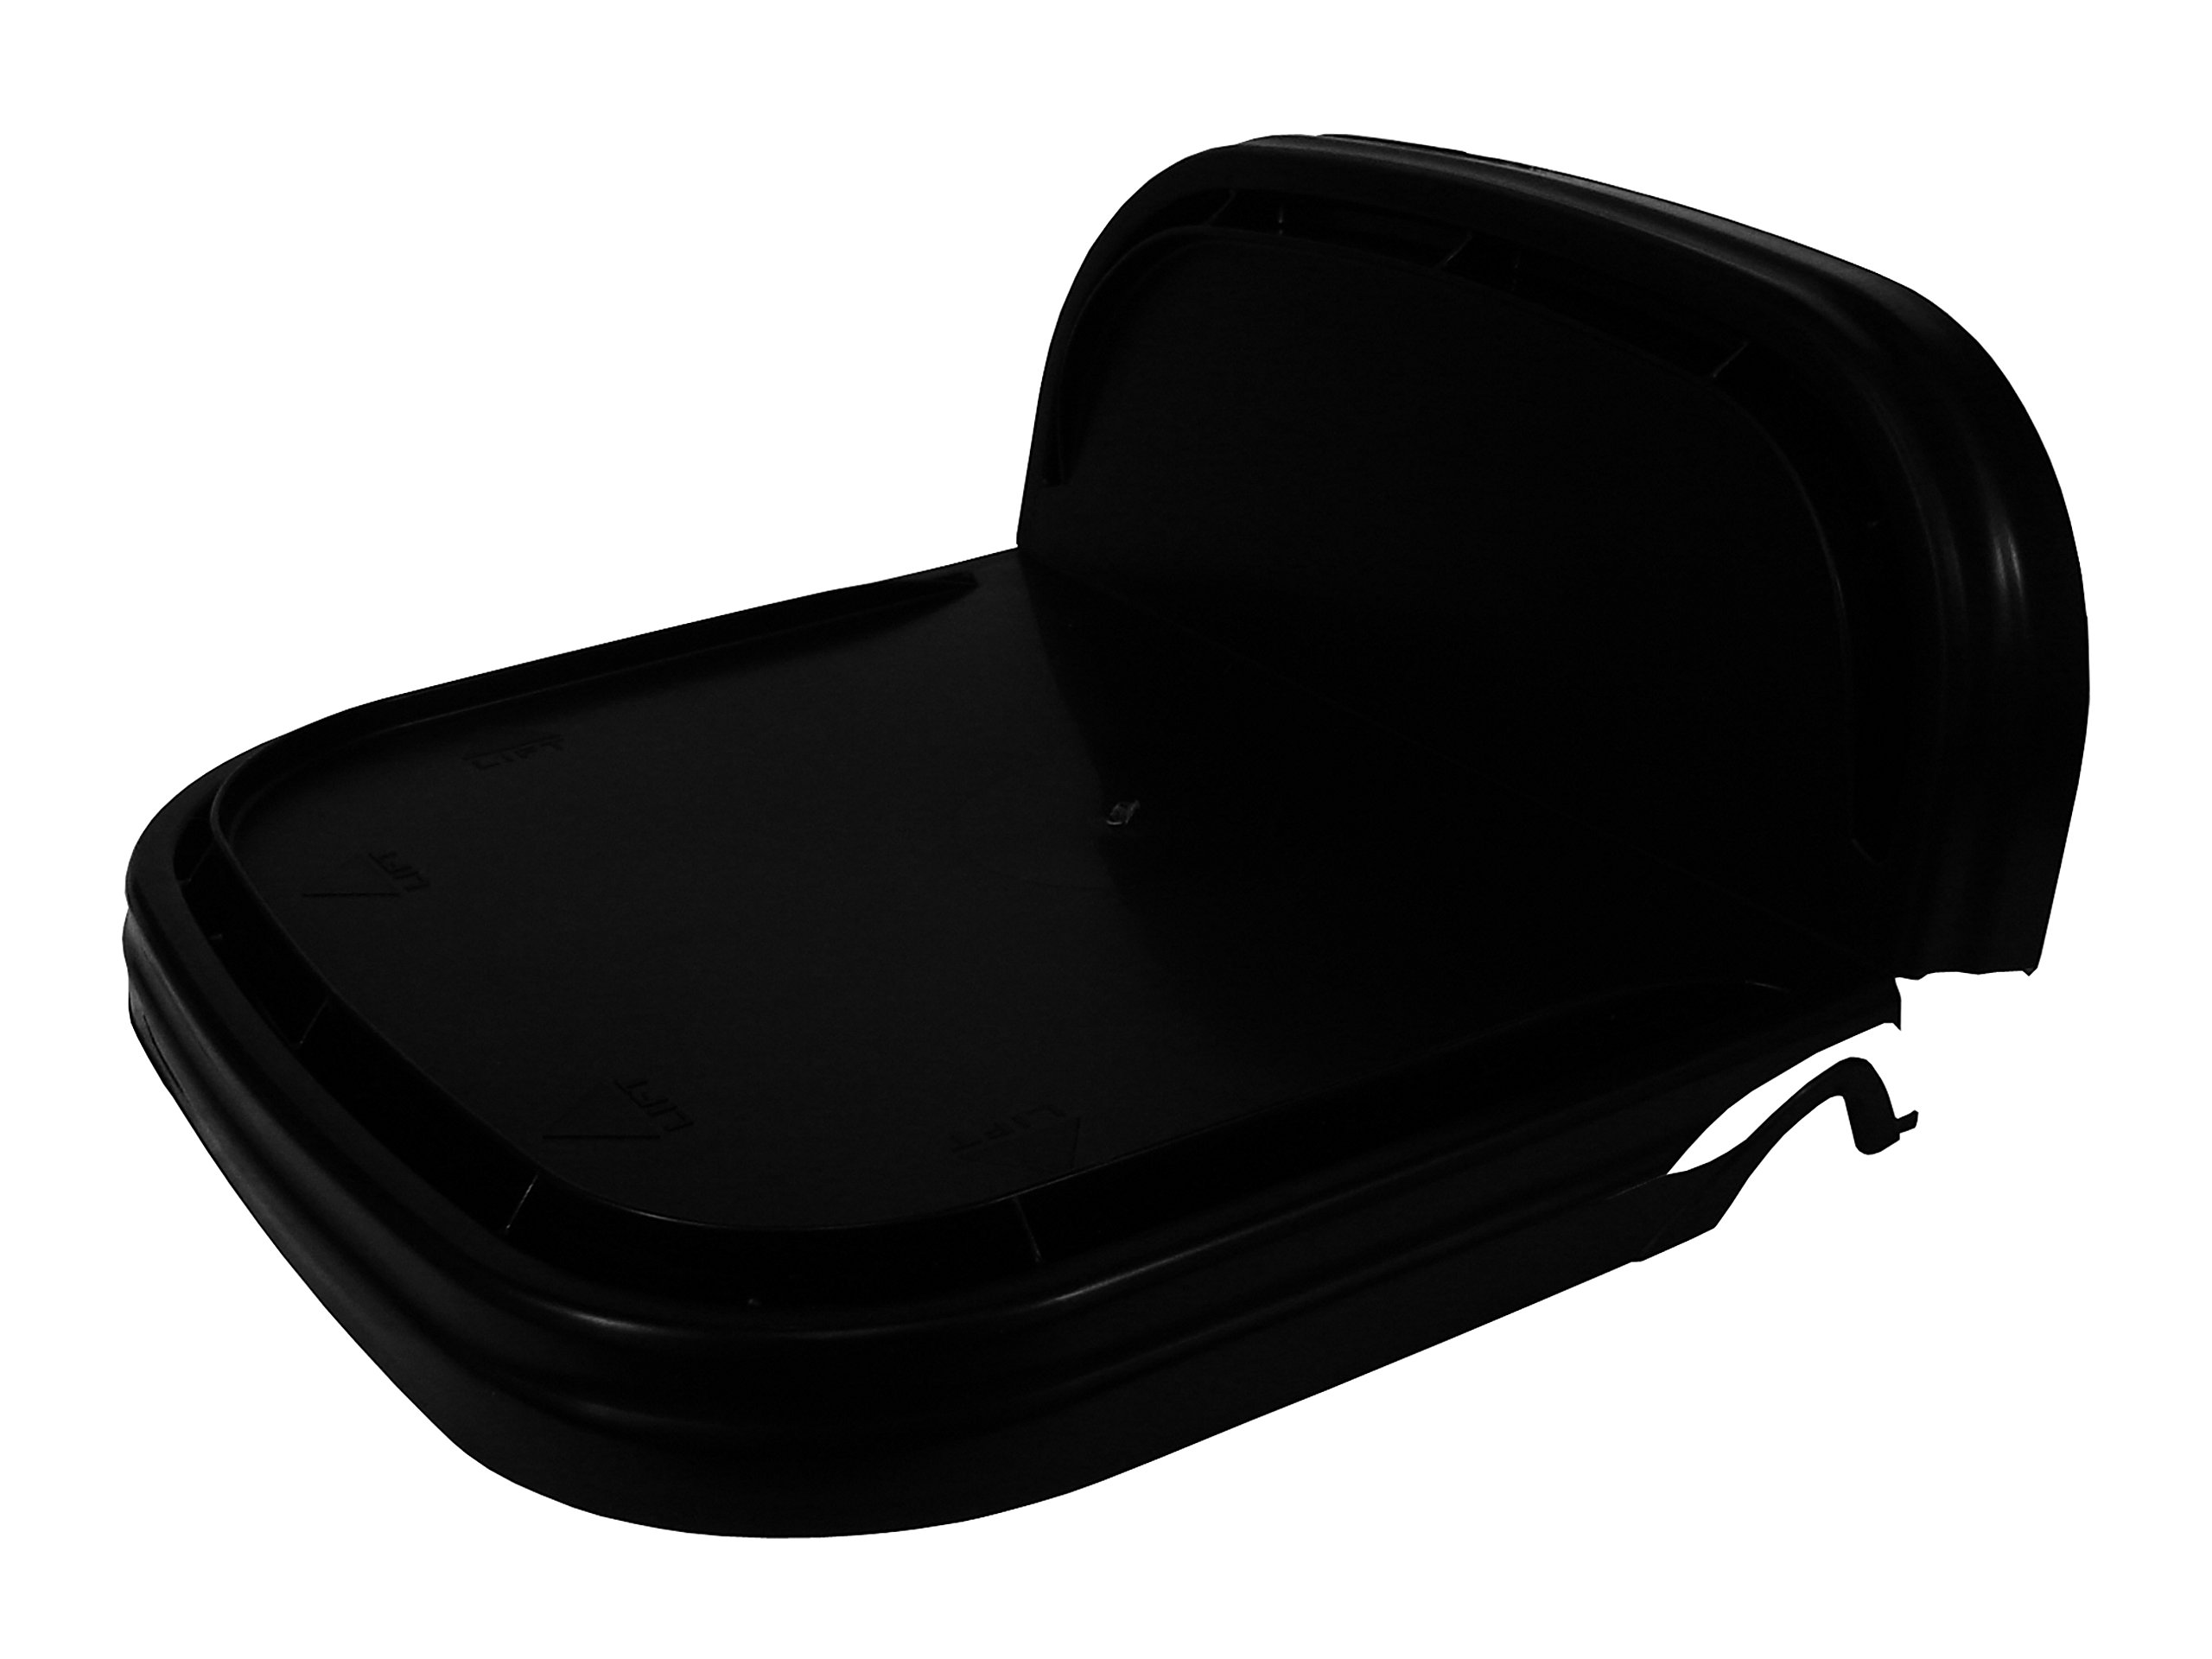 5.3 Gallon Black Rectangular Bucket/Pail with Hinged Snap Lid, 2 Pack by API Kirk Containers (Image #2)